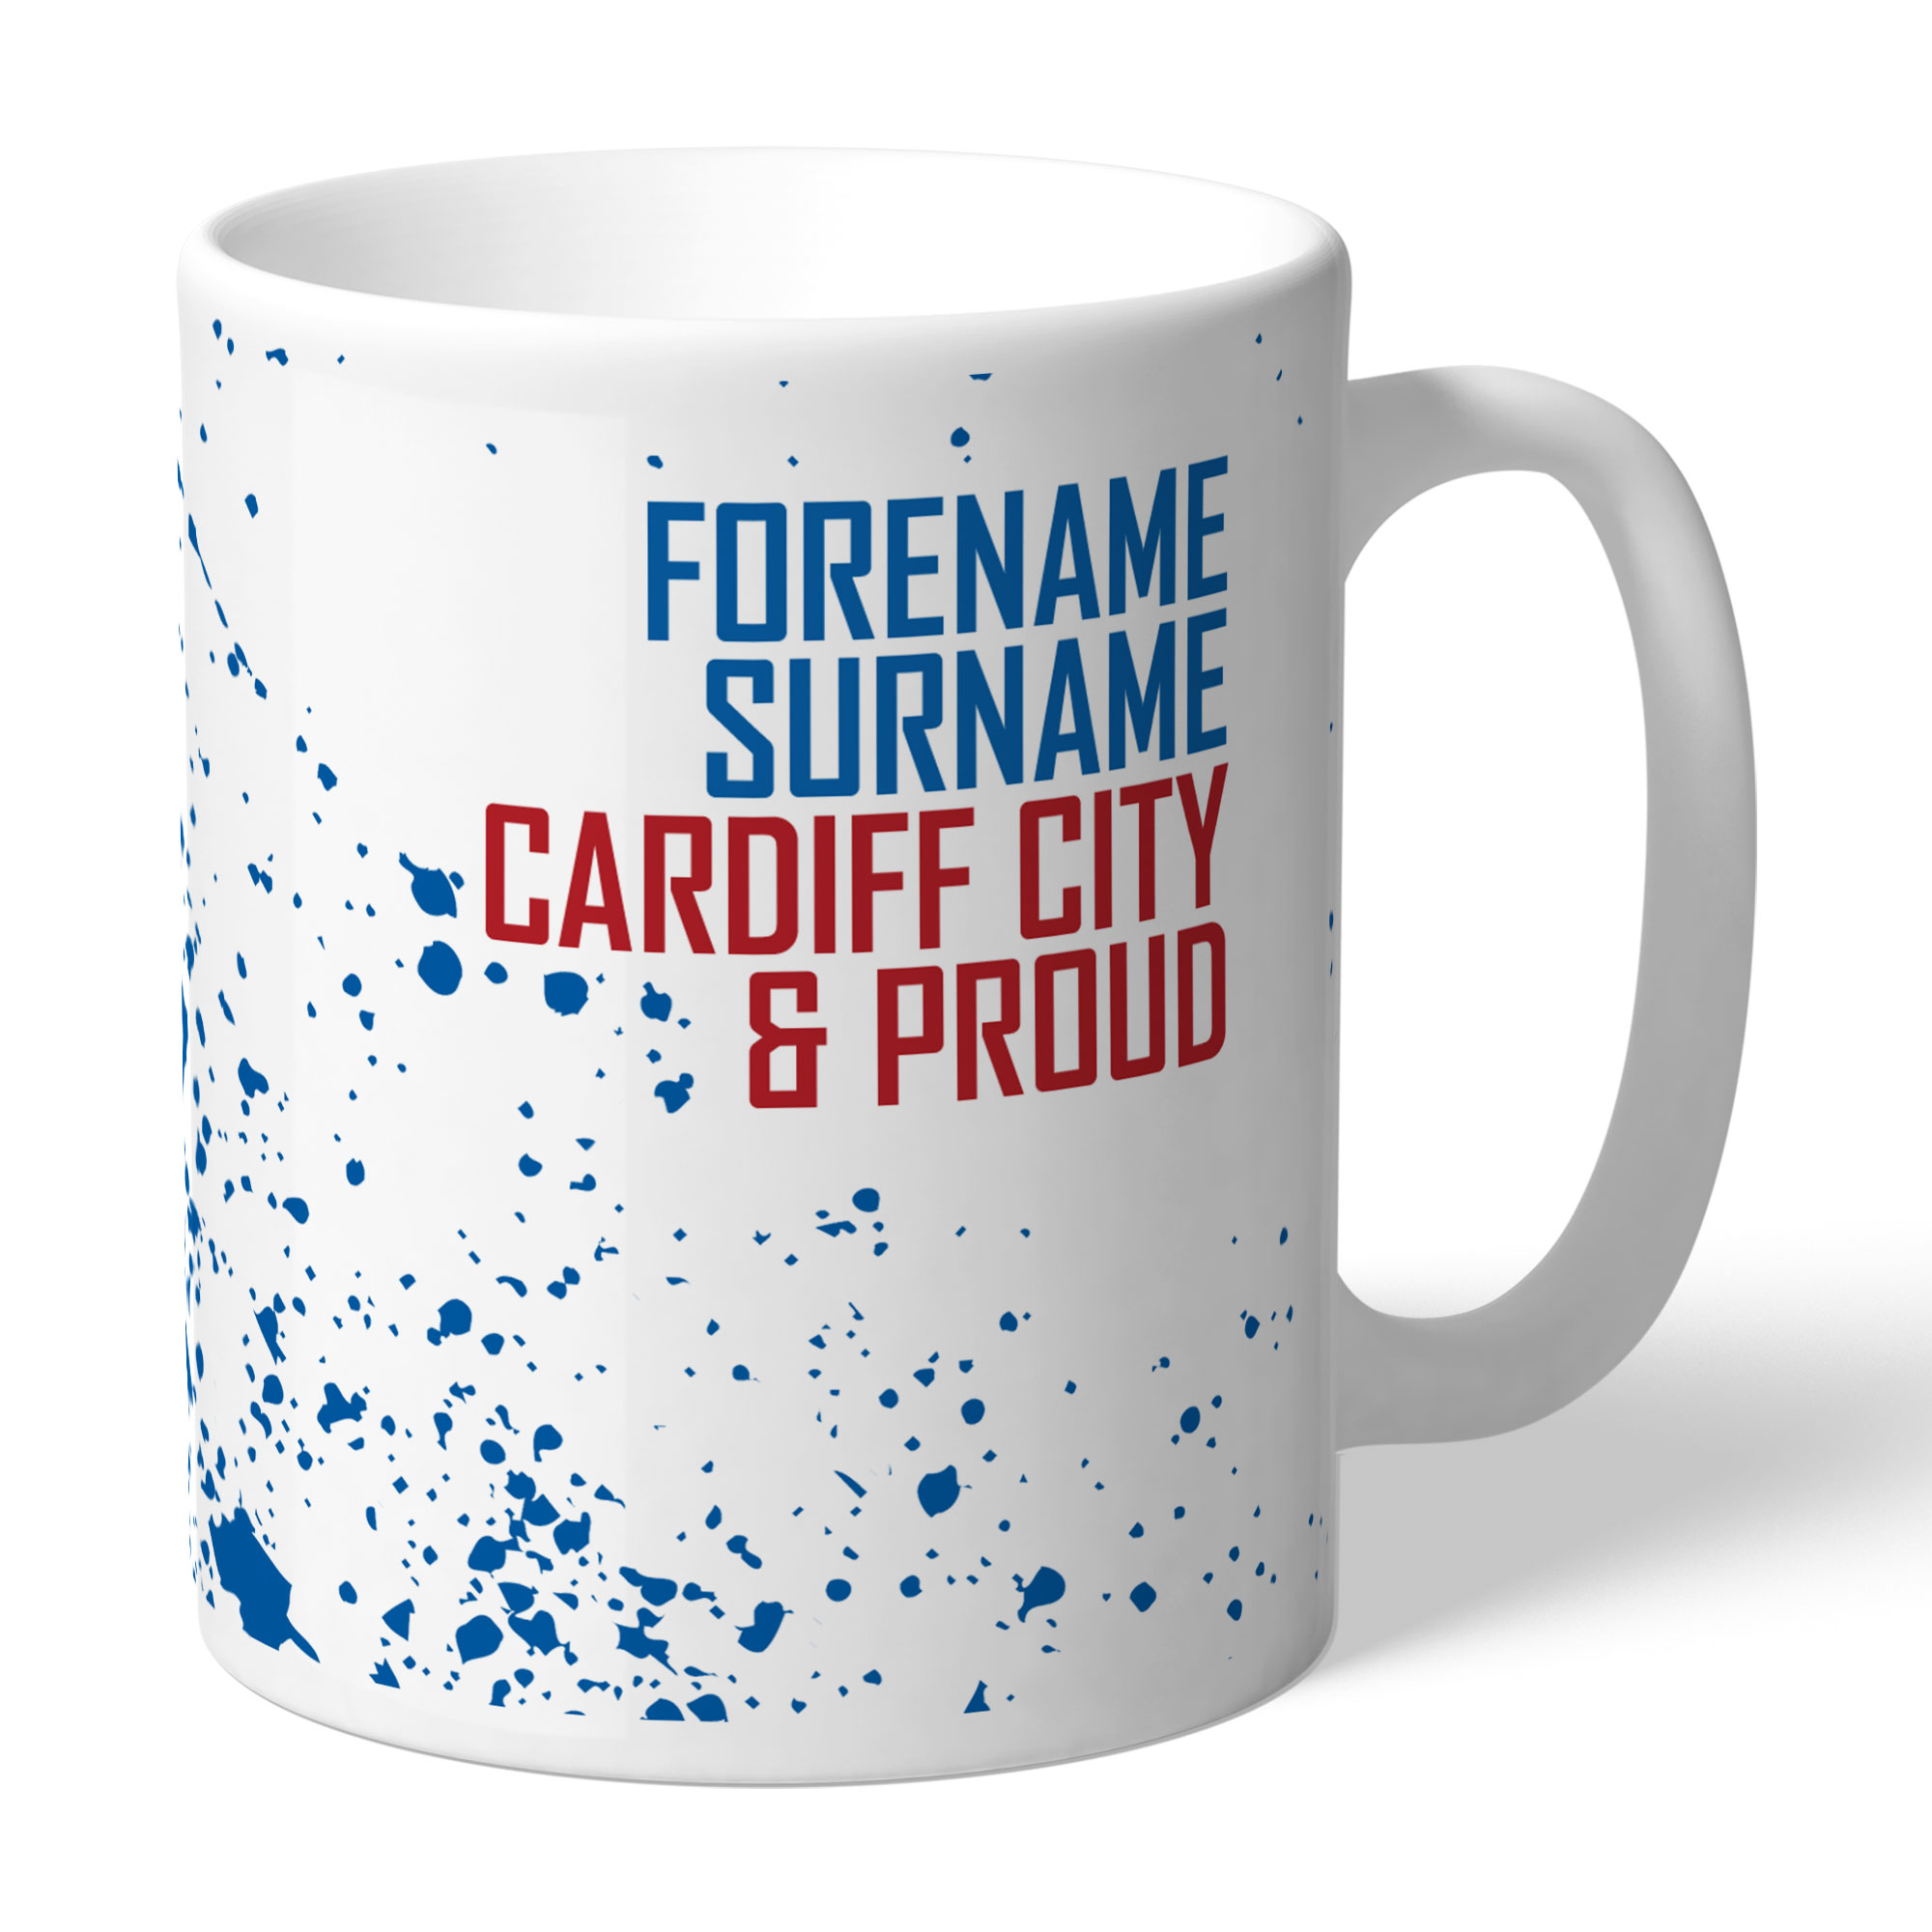 Cardiff City FC Proud Mug